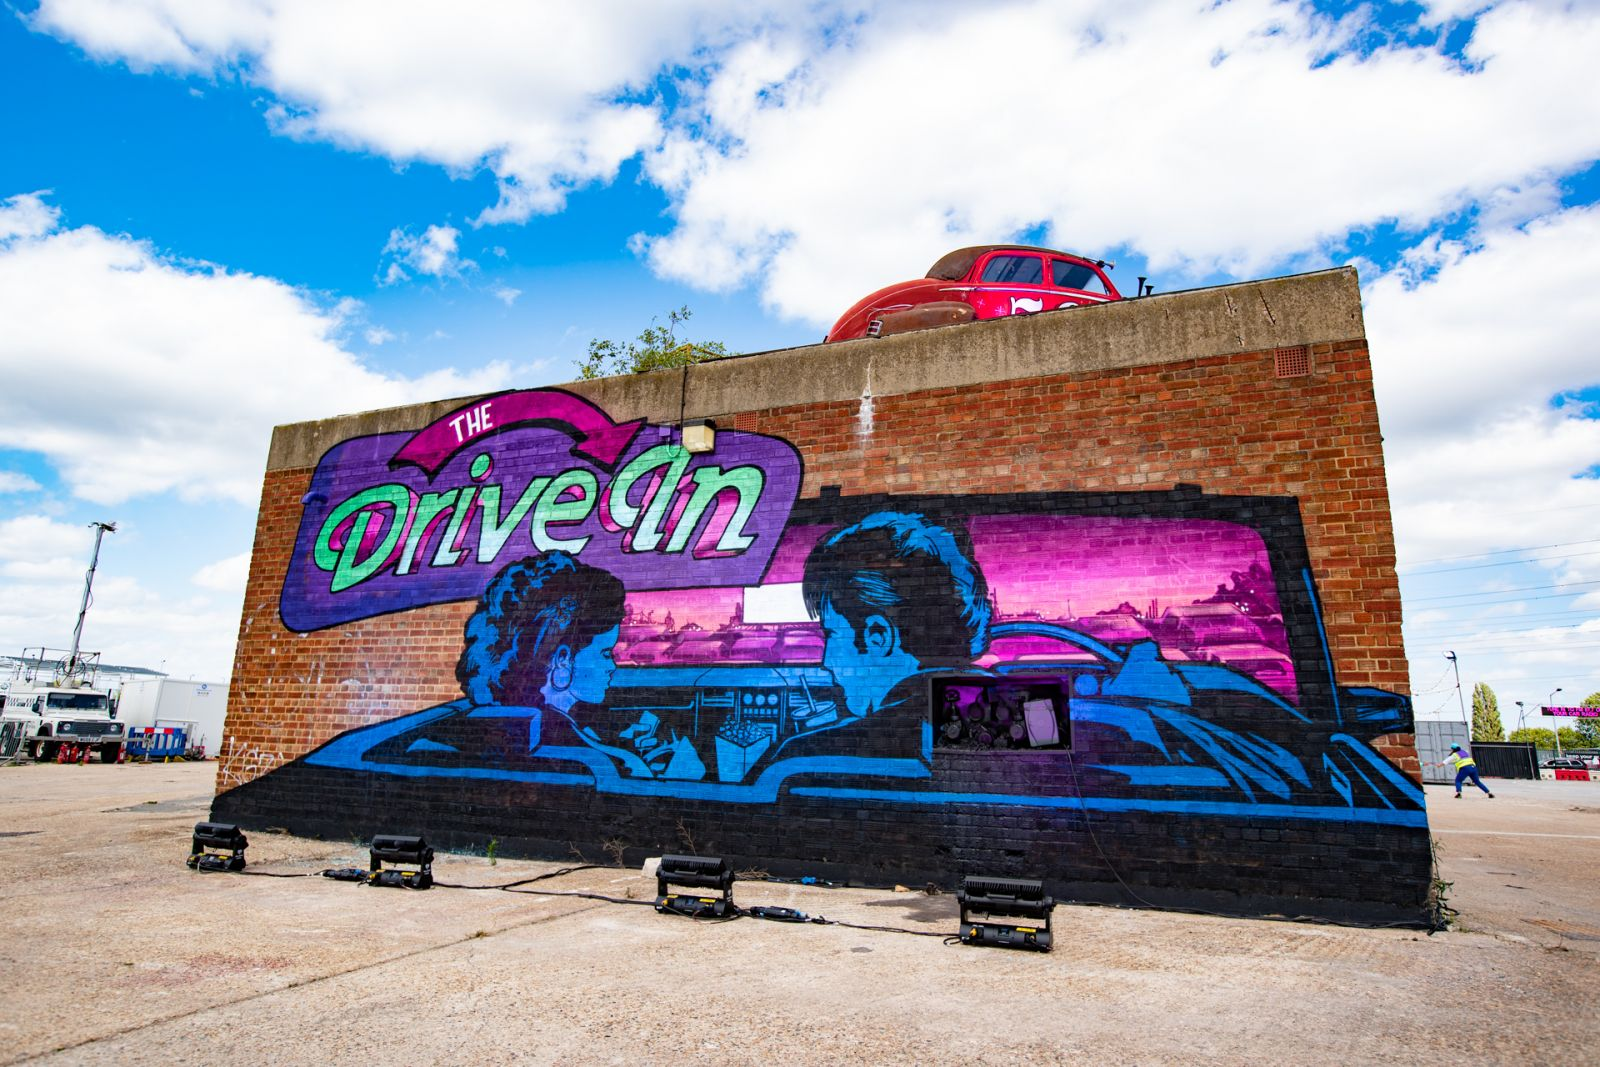 Discover 'The Drive In' Enfield